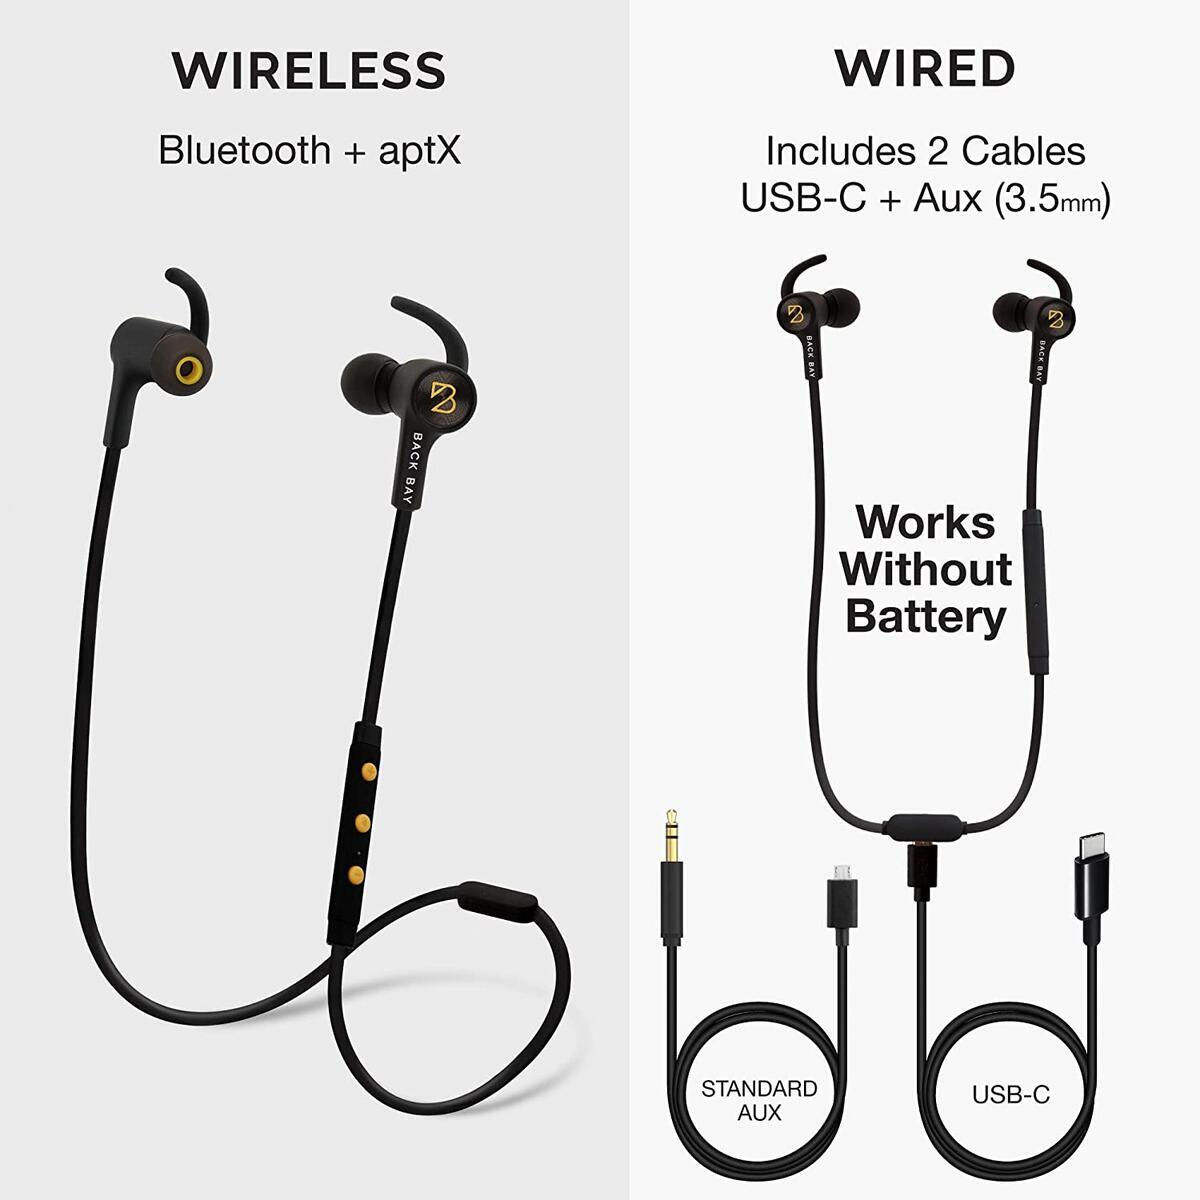 3-in-1 Wireless+Wired Earbuds [Bluetooth + AUX + USB-C Audio] by Back Bay Audio (Black)